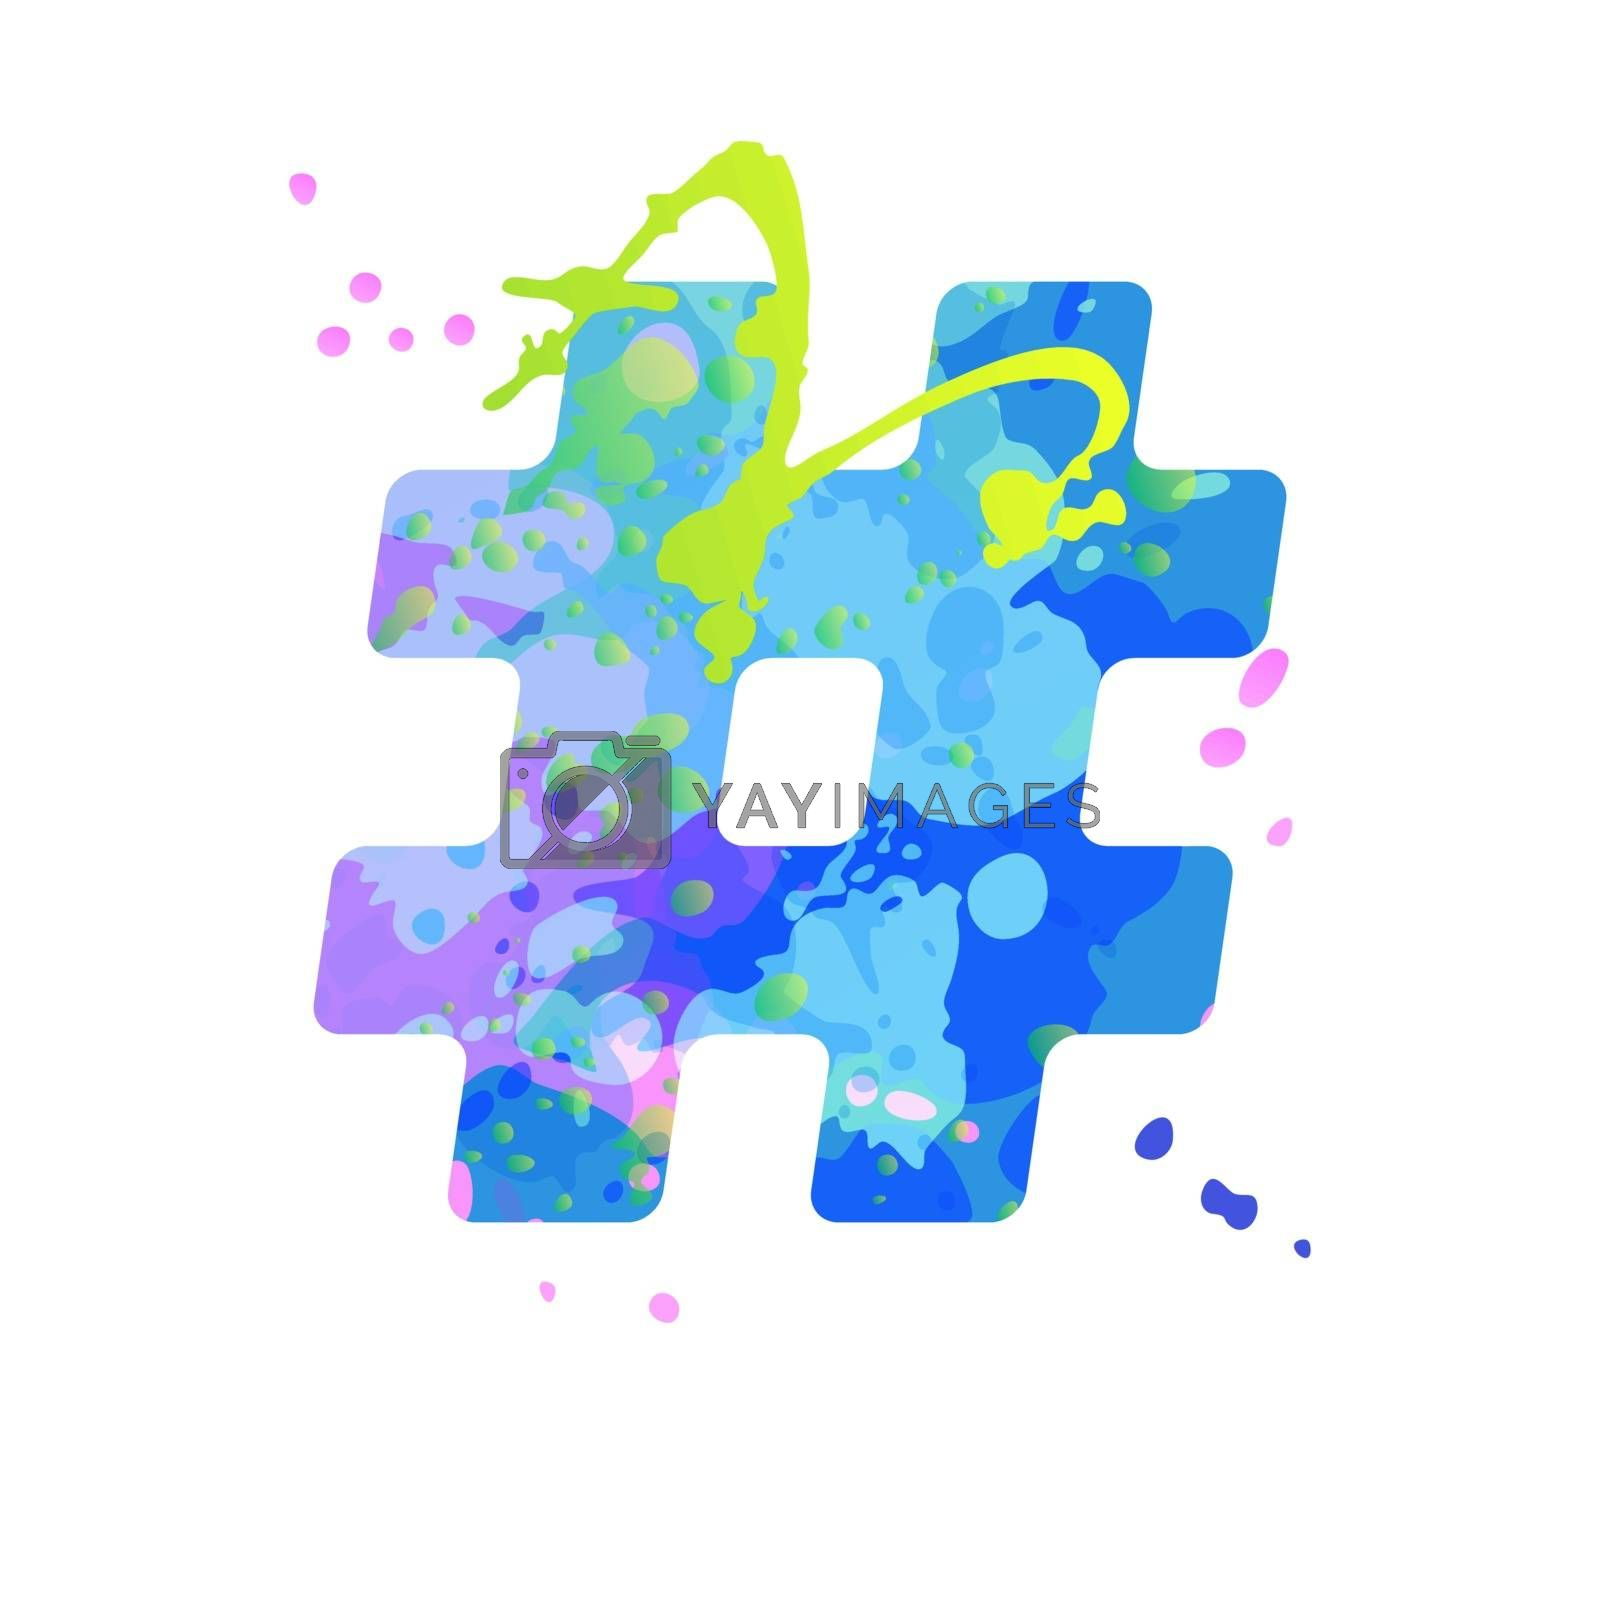 Special symbol hashtag sign with effect of liquid spots of paint in blue, green, pink colors, isolated on white background. Decoration element for design of a flyer, poster, calendar, cover, title.